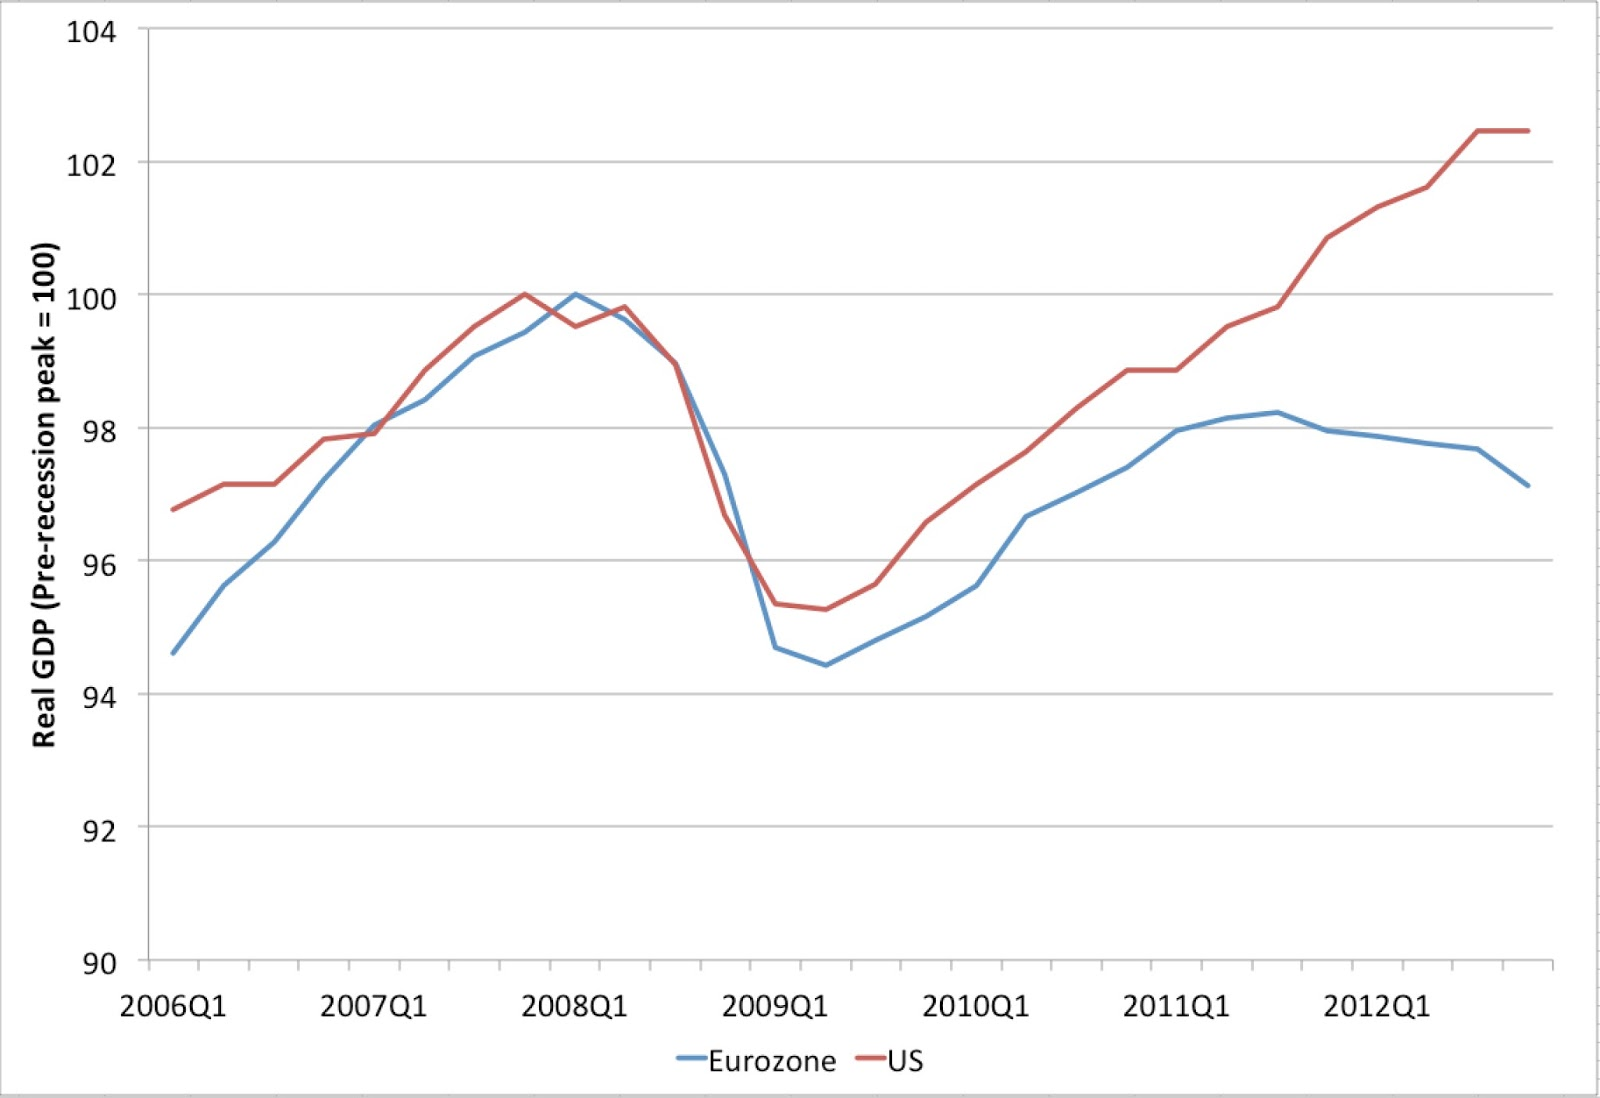 Early Warning: US vs European GDP